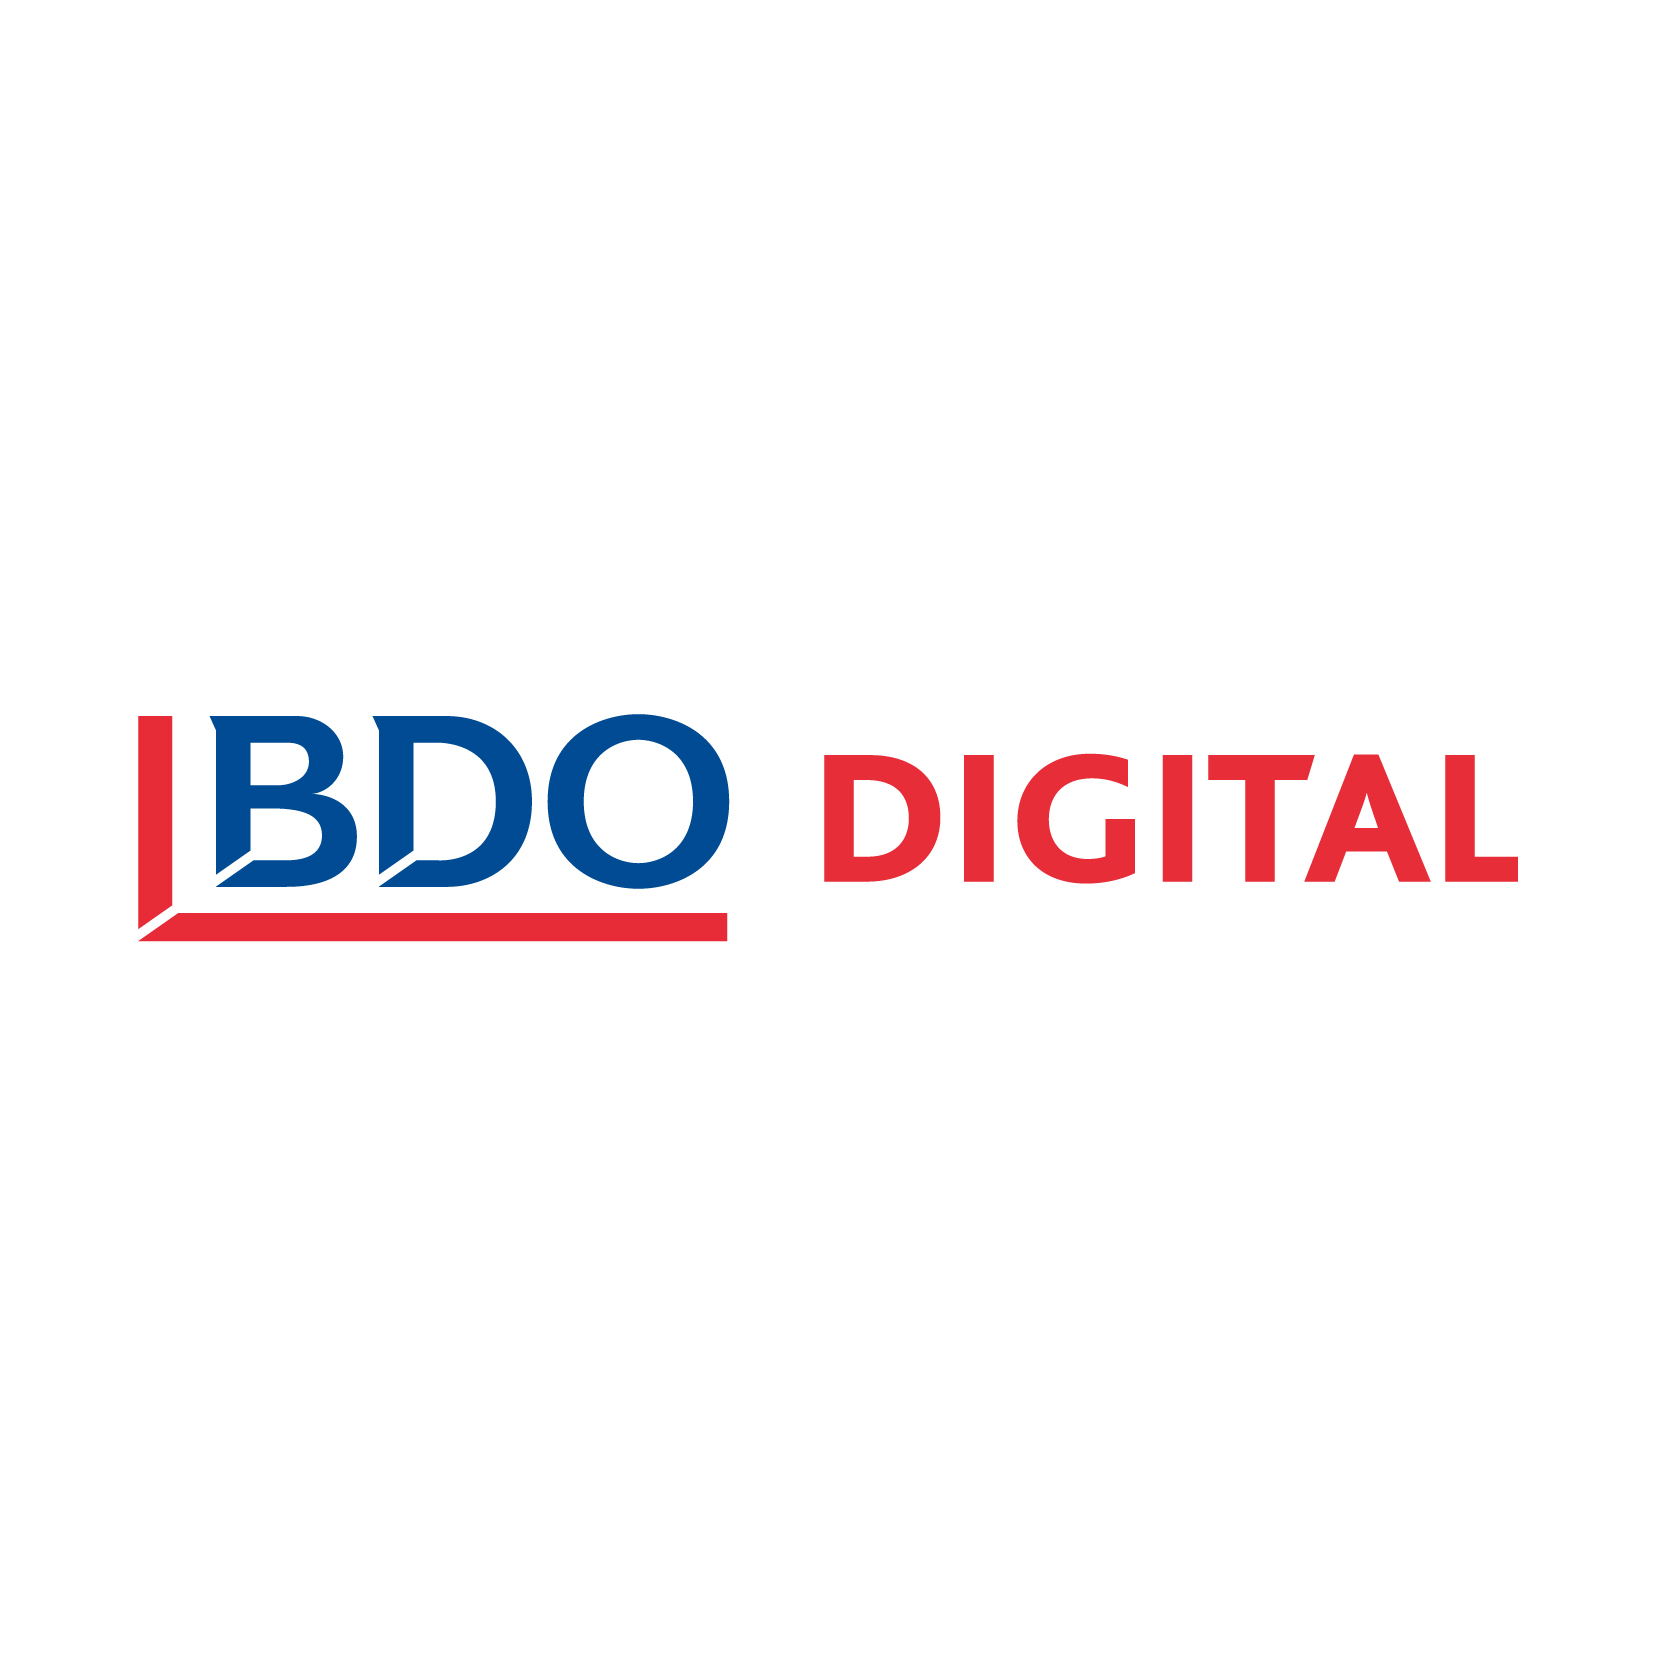 BDO_digital_logo.jpg